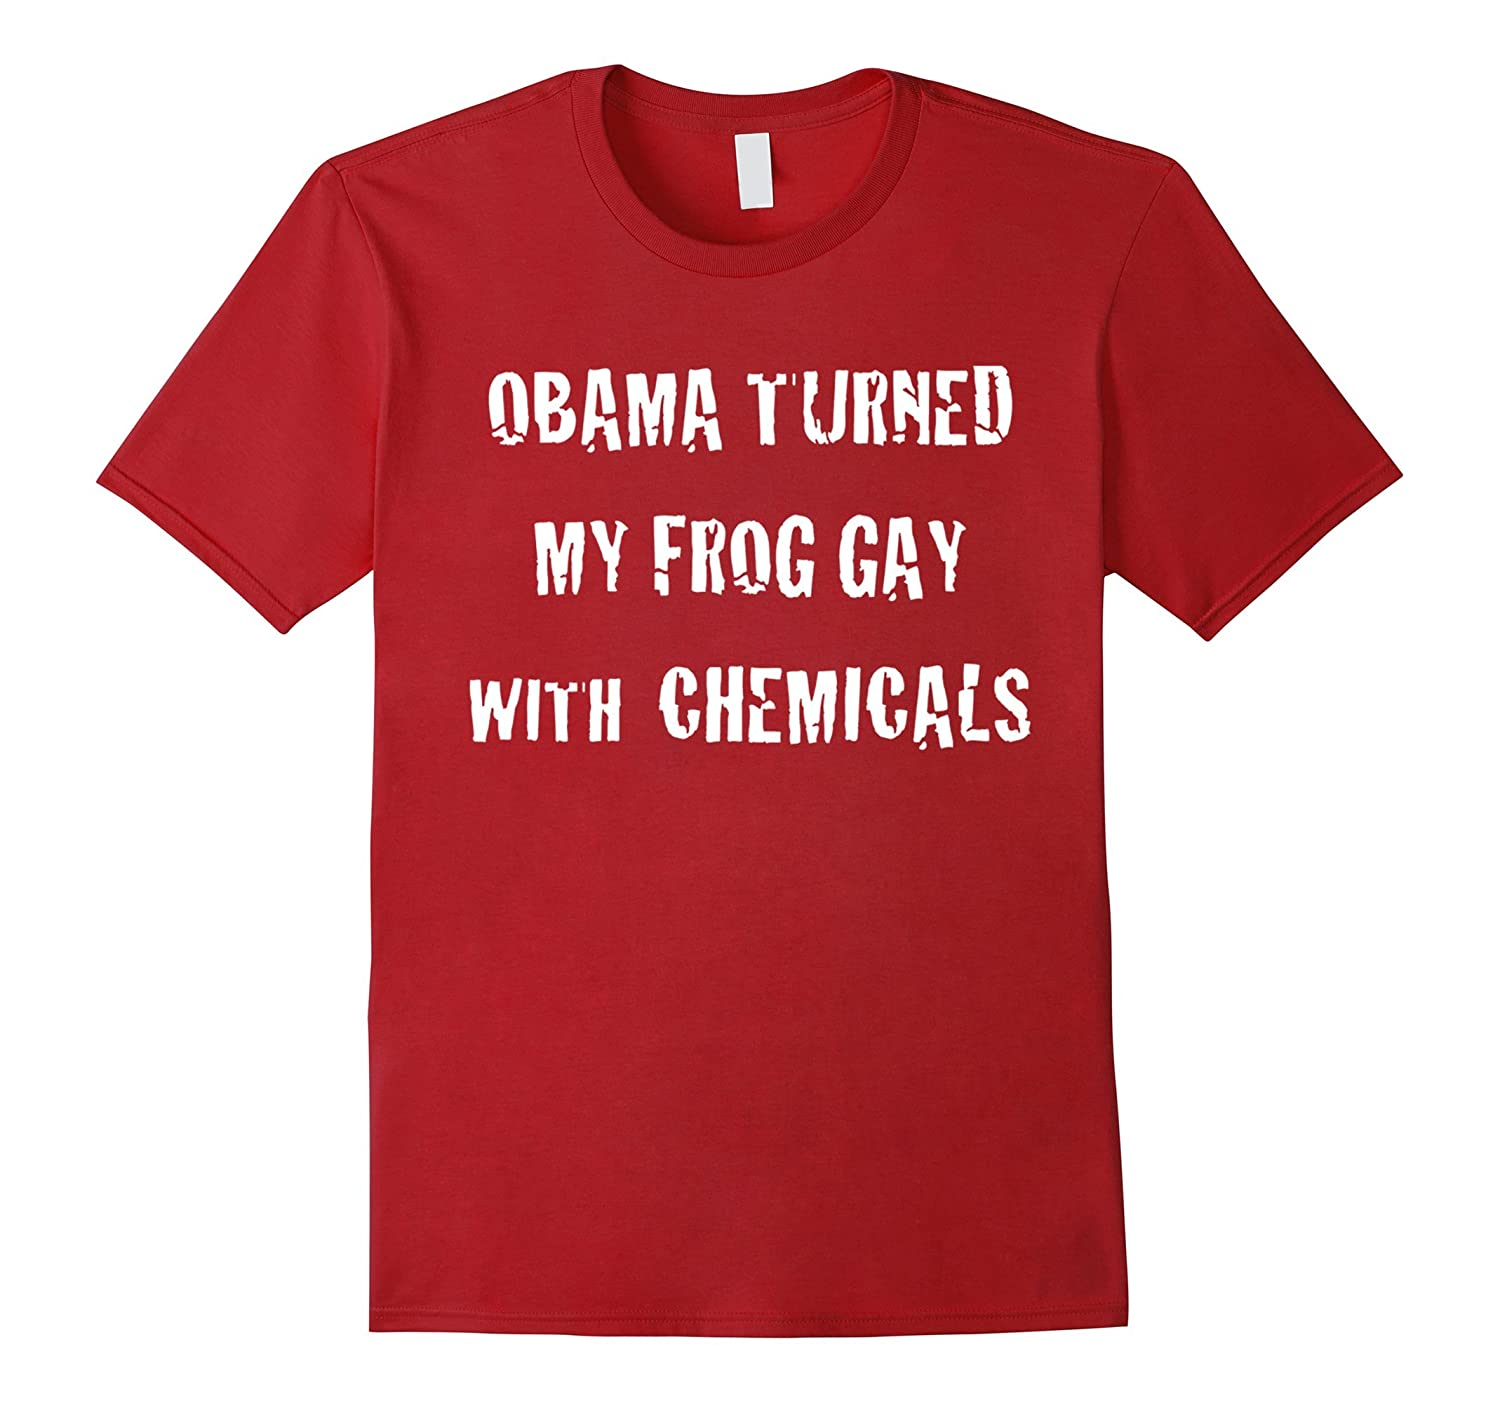 Obama turned my frog gay with chemicals